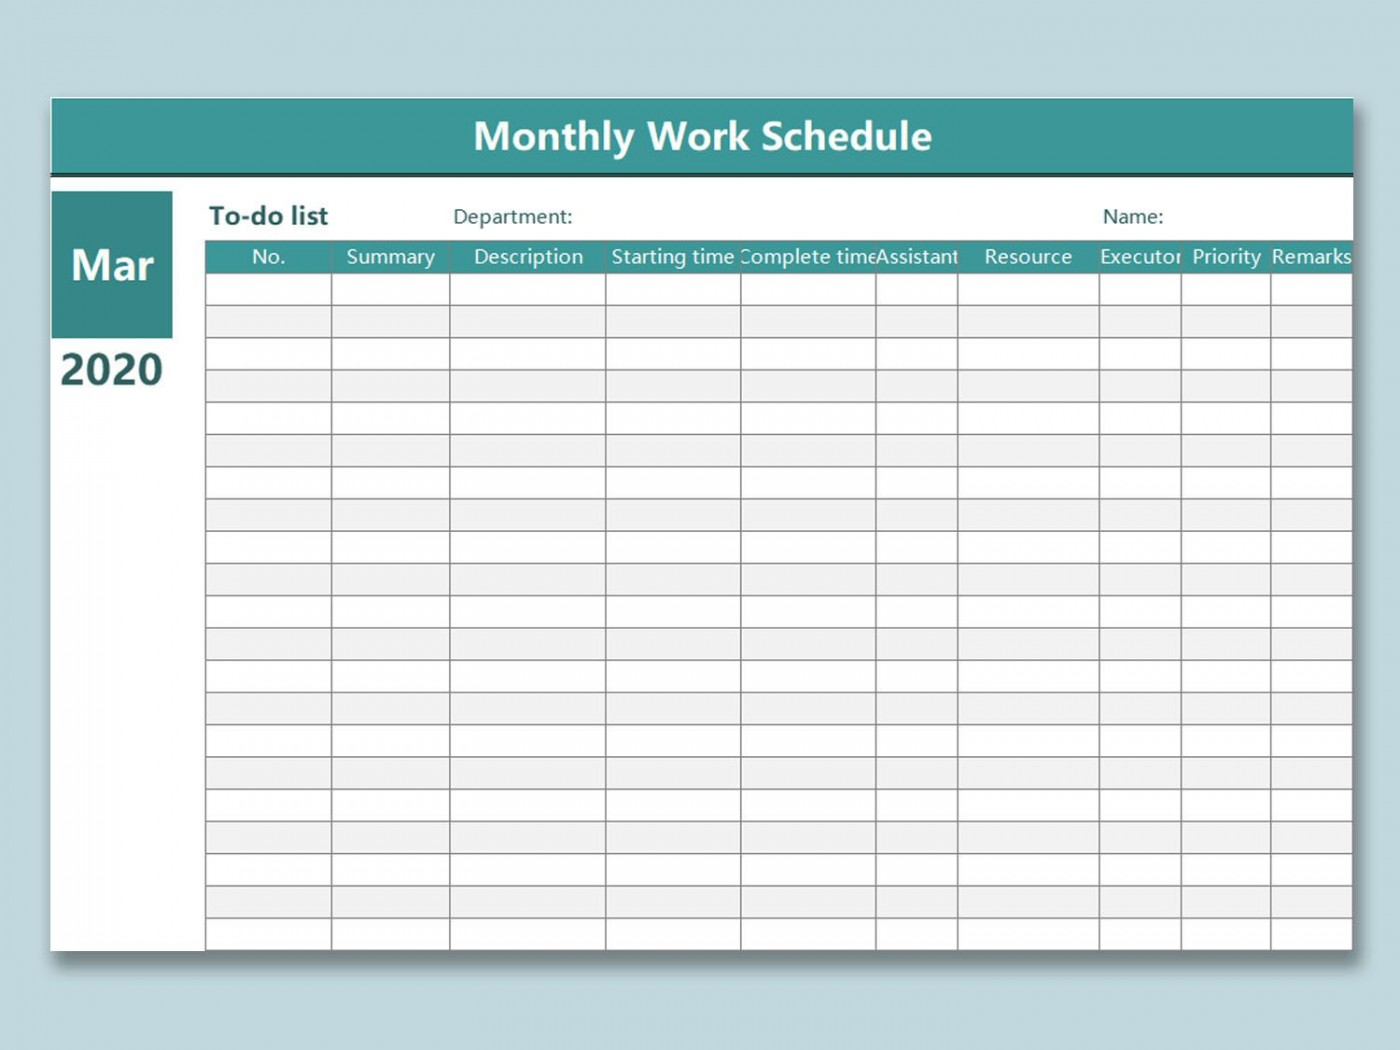 004 Phenomenal Monthly Work Calendar Template Excel Image  Plan Schedule Free Download 20191400